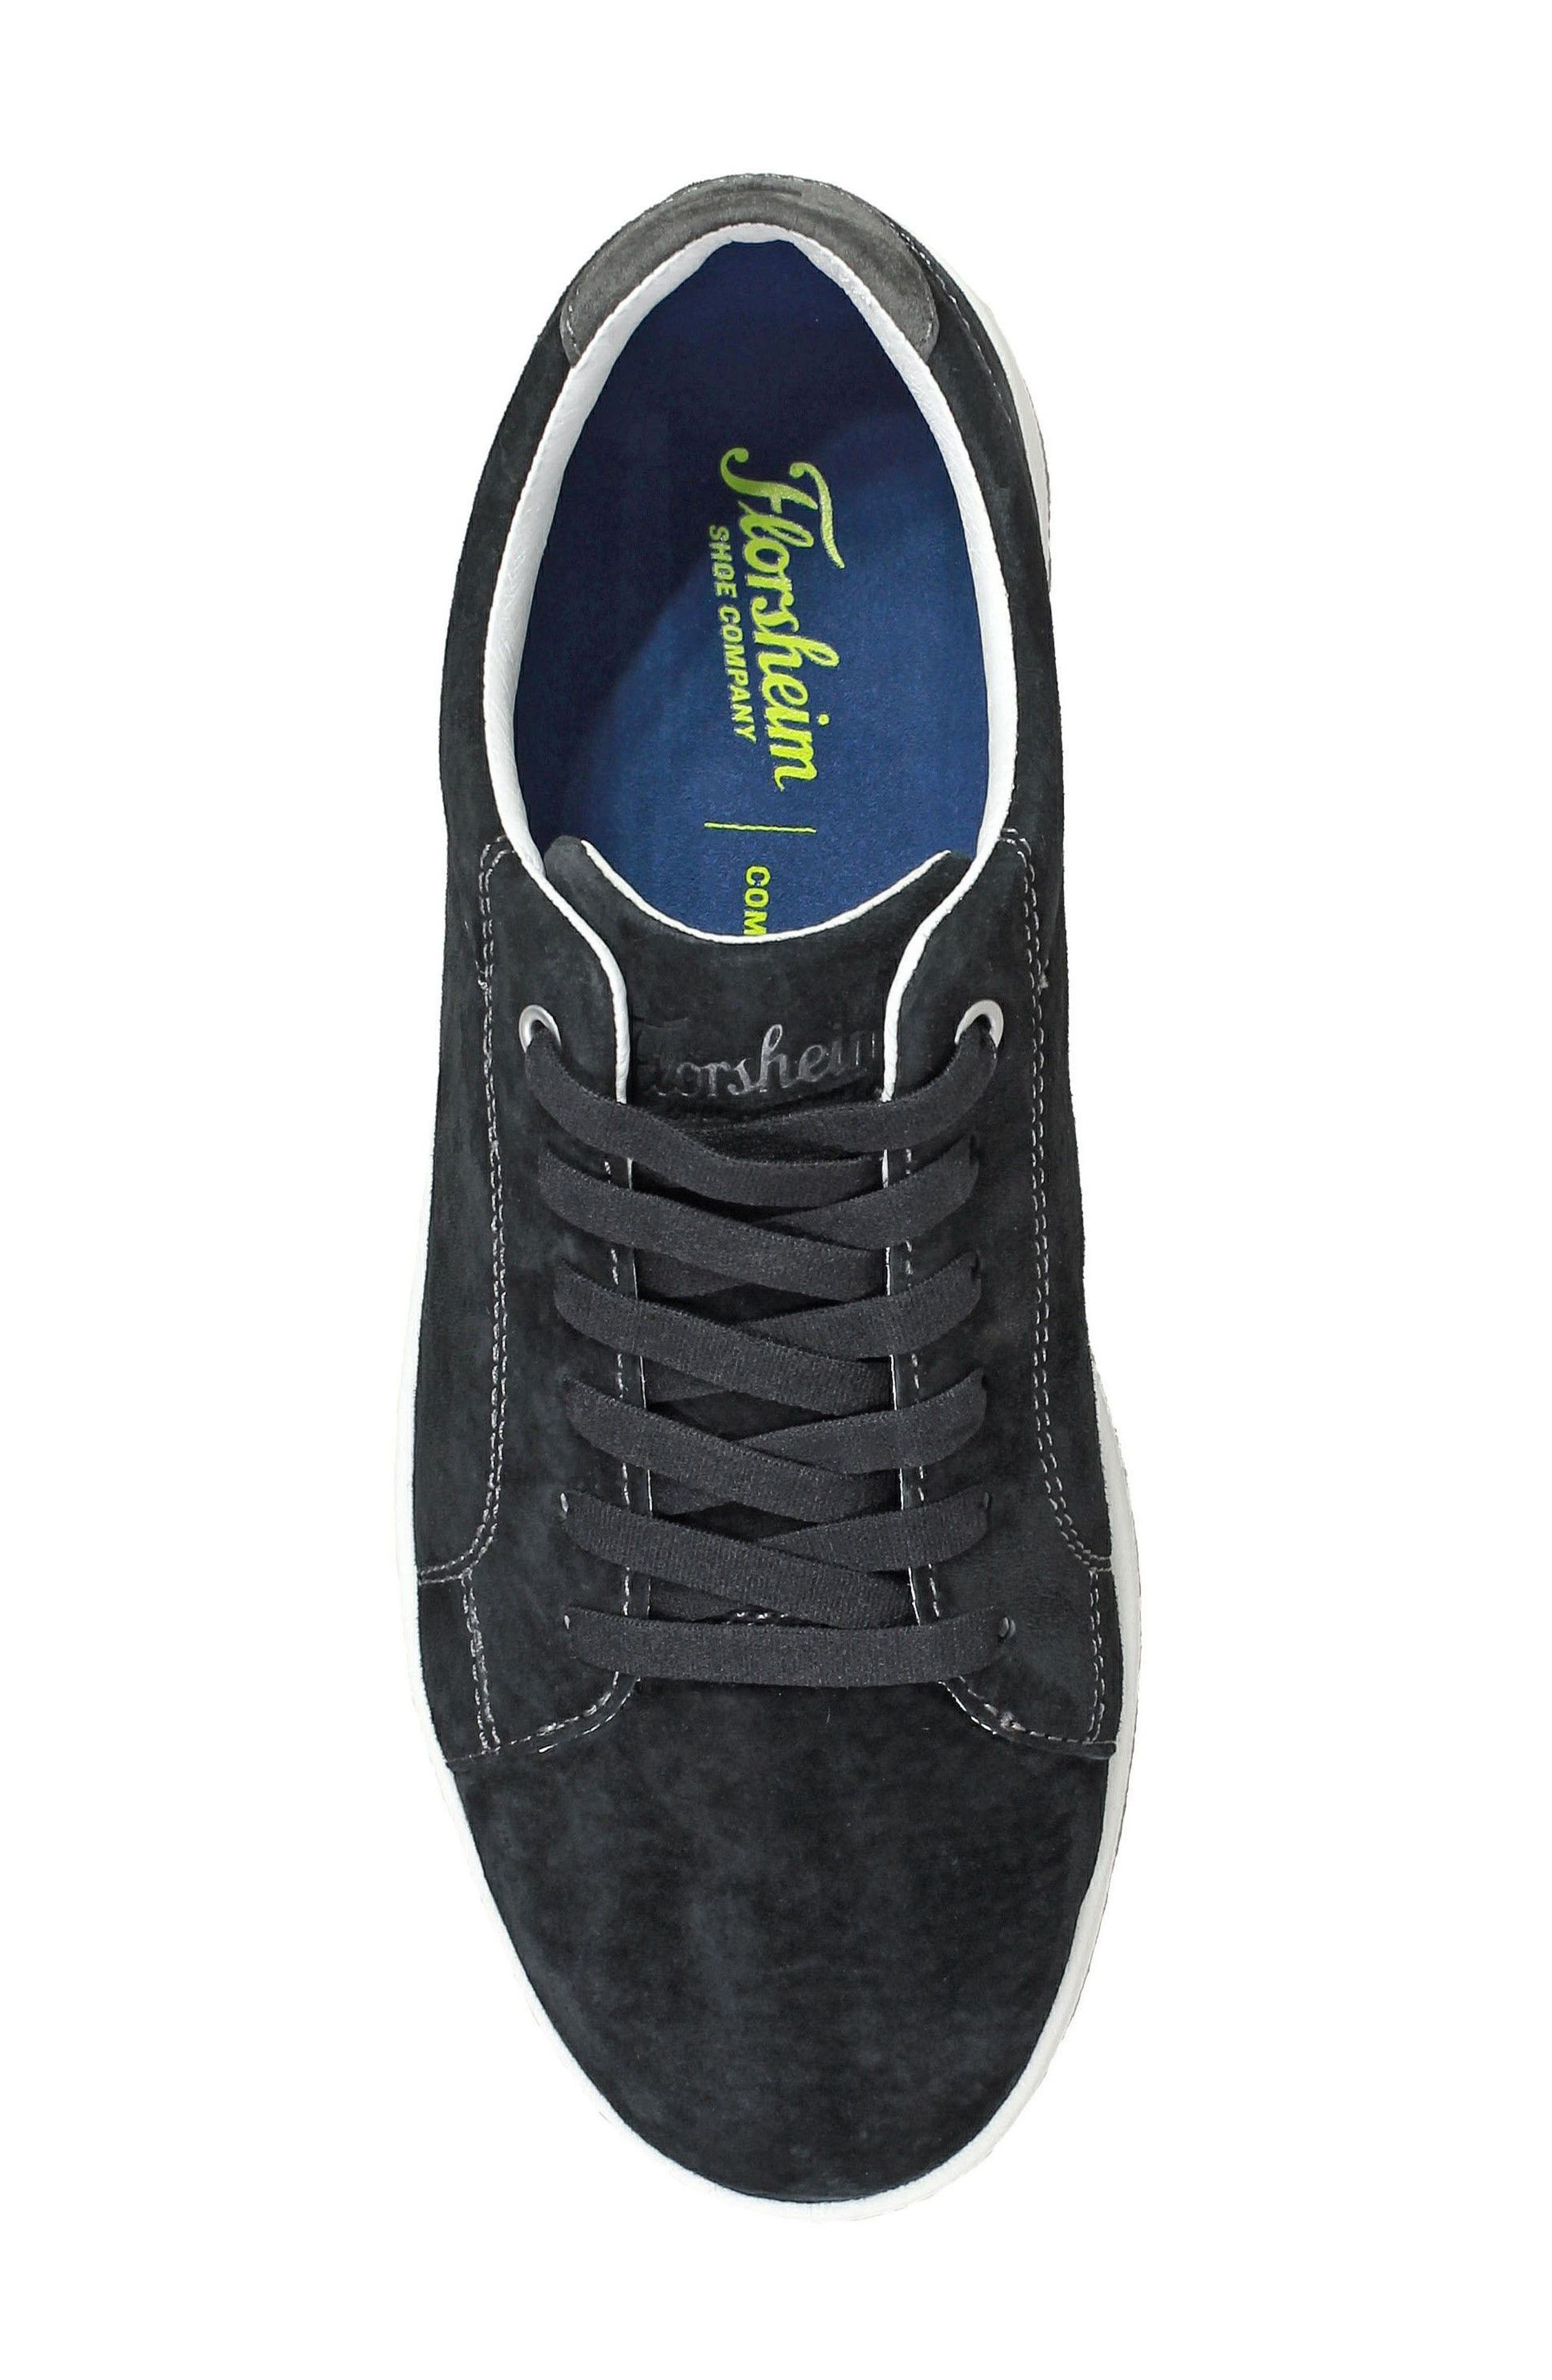 Edge Low Top Sneaker,                             Alternate thumbnail 5, color,                             BLACK NUBUCK